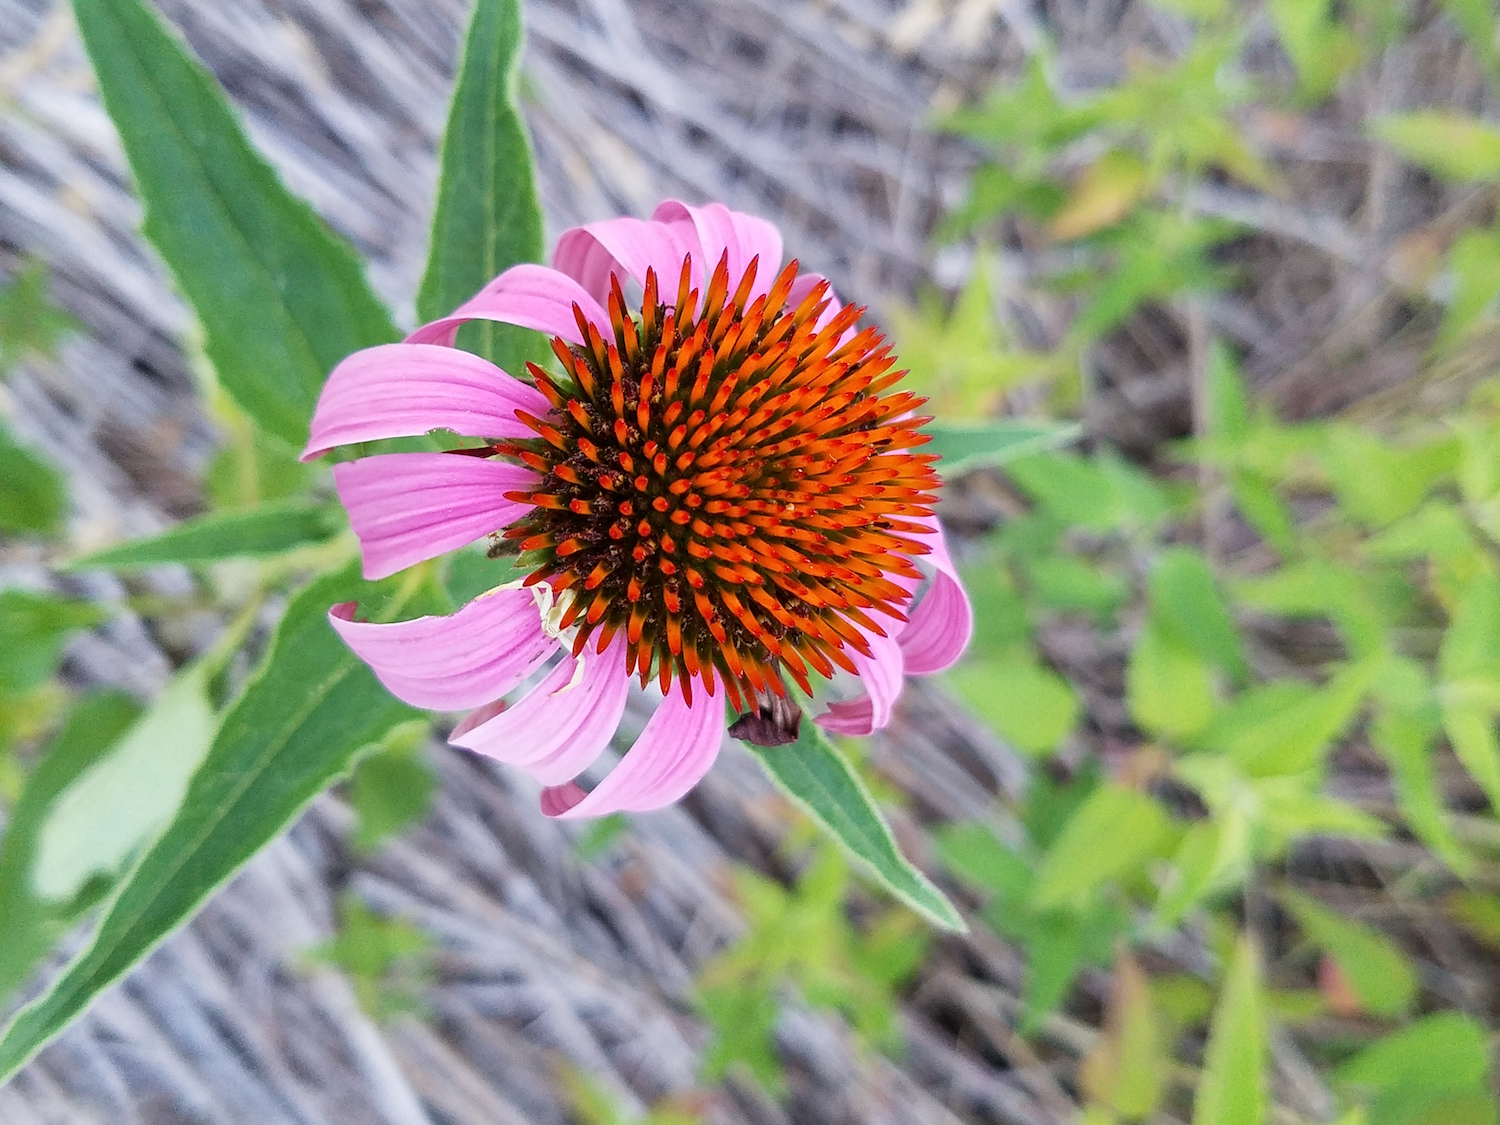 Echinacea in June on Bird Runner Wildlife Refuge. Photo by Margy Stewart.